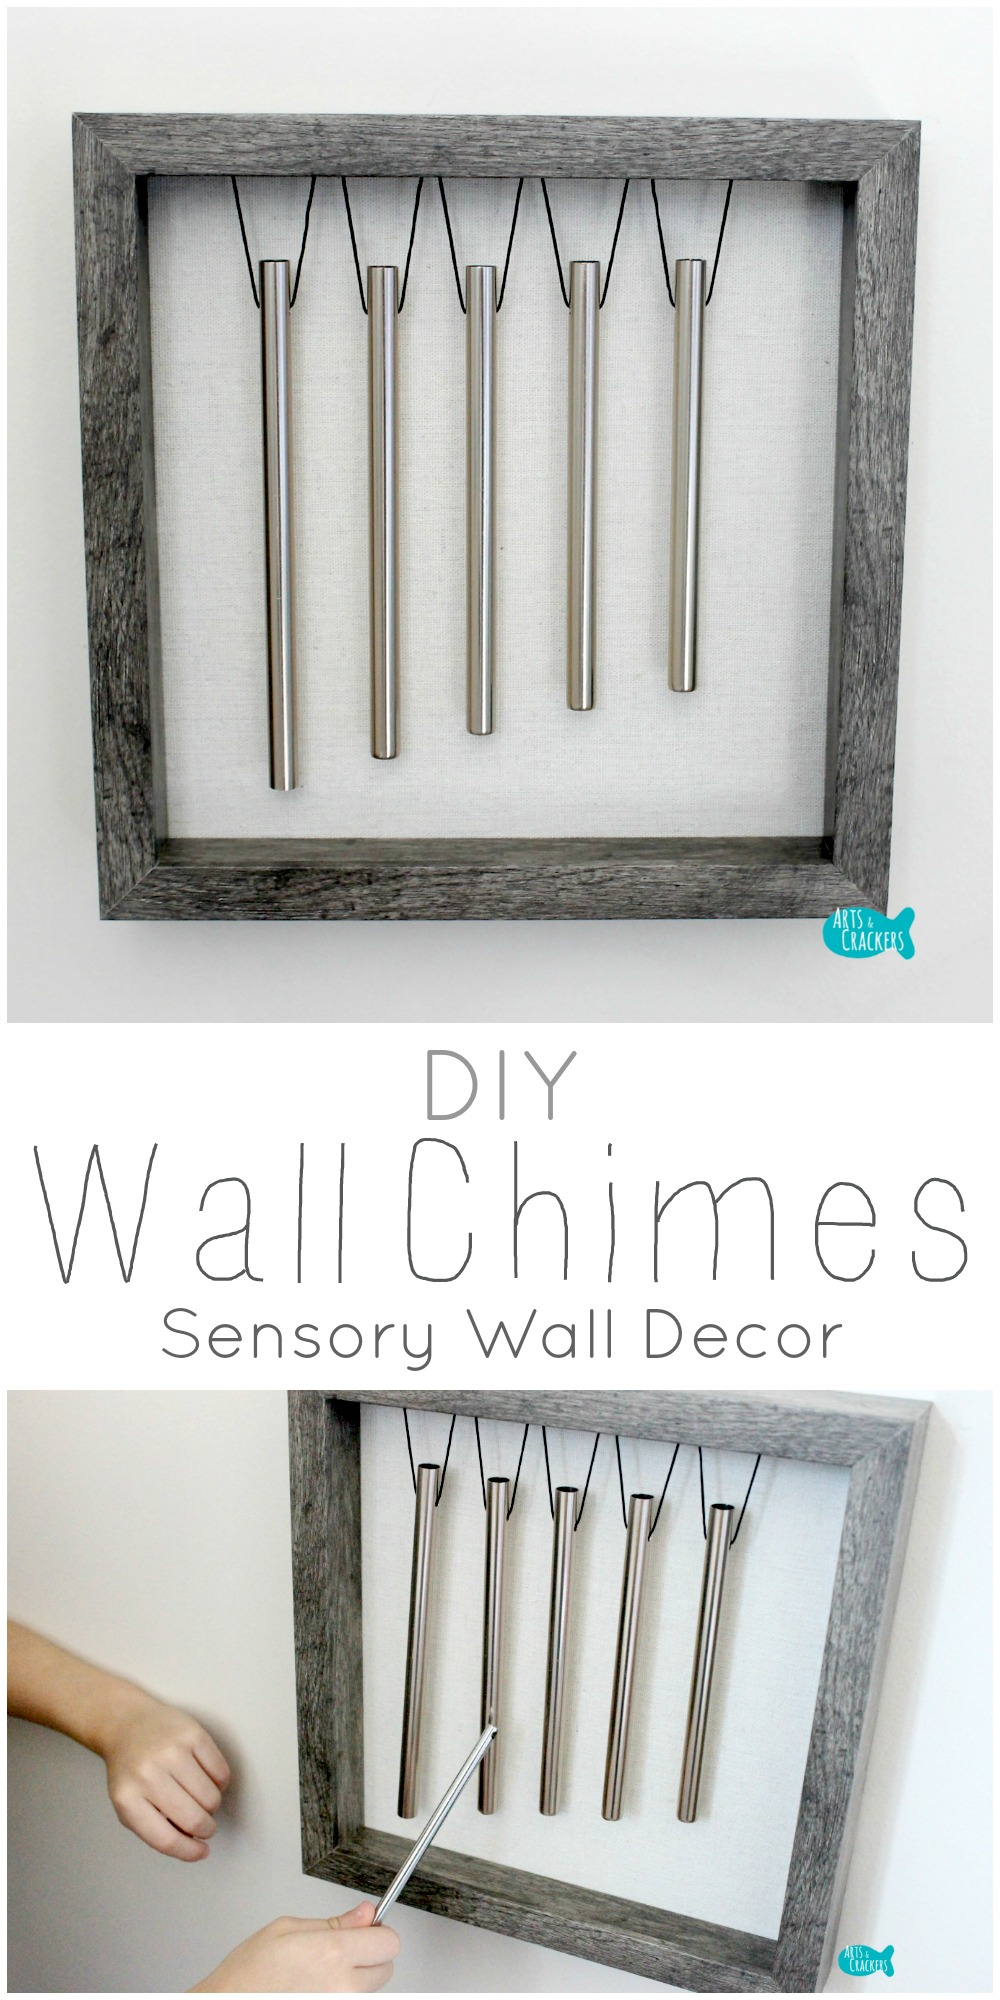 These Diy Wind Chimes For The Wall Work As An Interactive Sensory Decoration